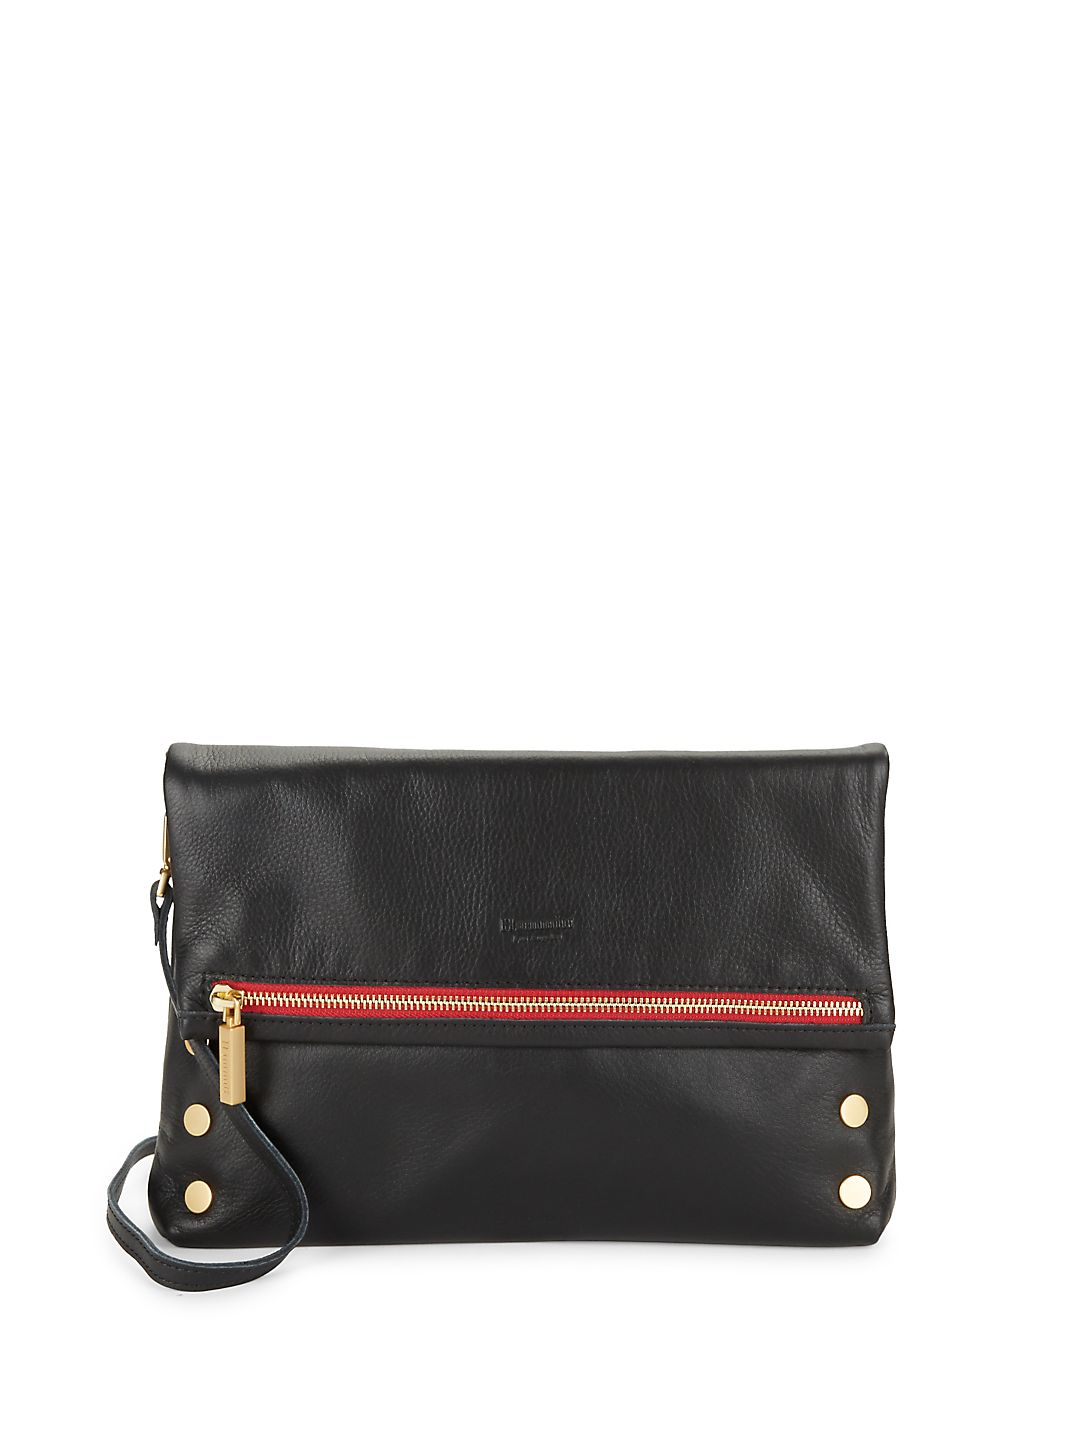 Flap Pebbled Leather Shoulder Bag